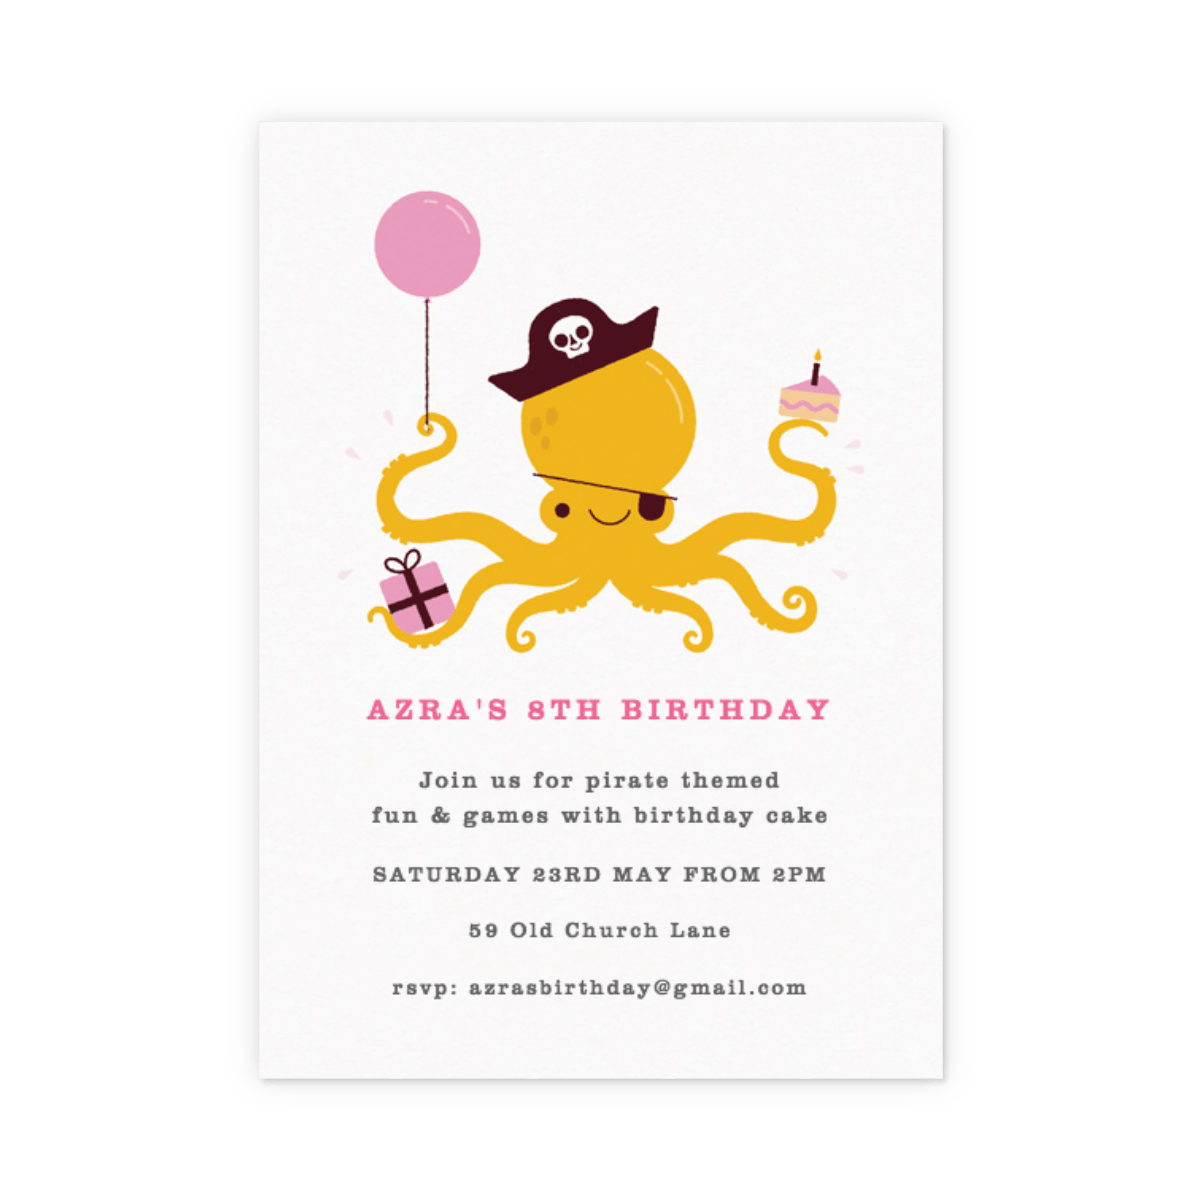 Https%3a%2f%2fwww.papier.com%2fproduct image%2f21877%2f4%2fpirate octopus pink 5515 avant 1492697231.png?ixlib=rb 1.1